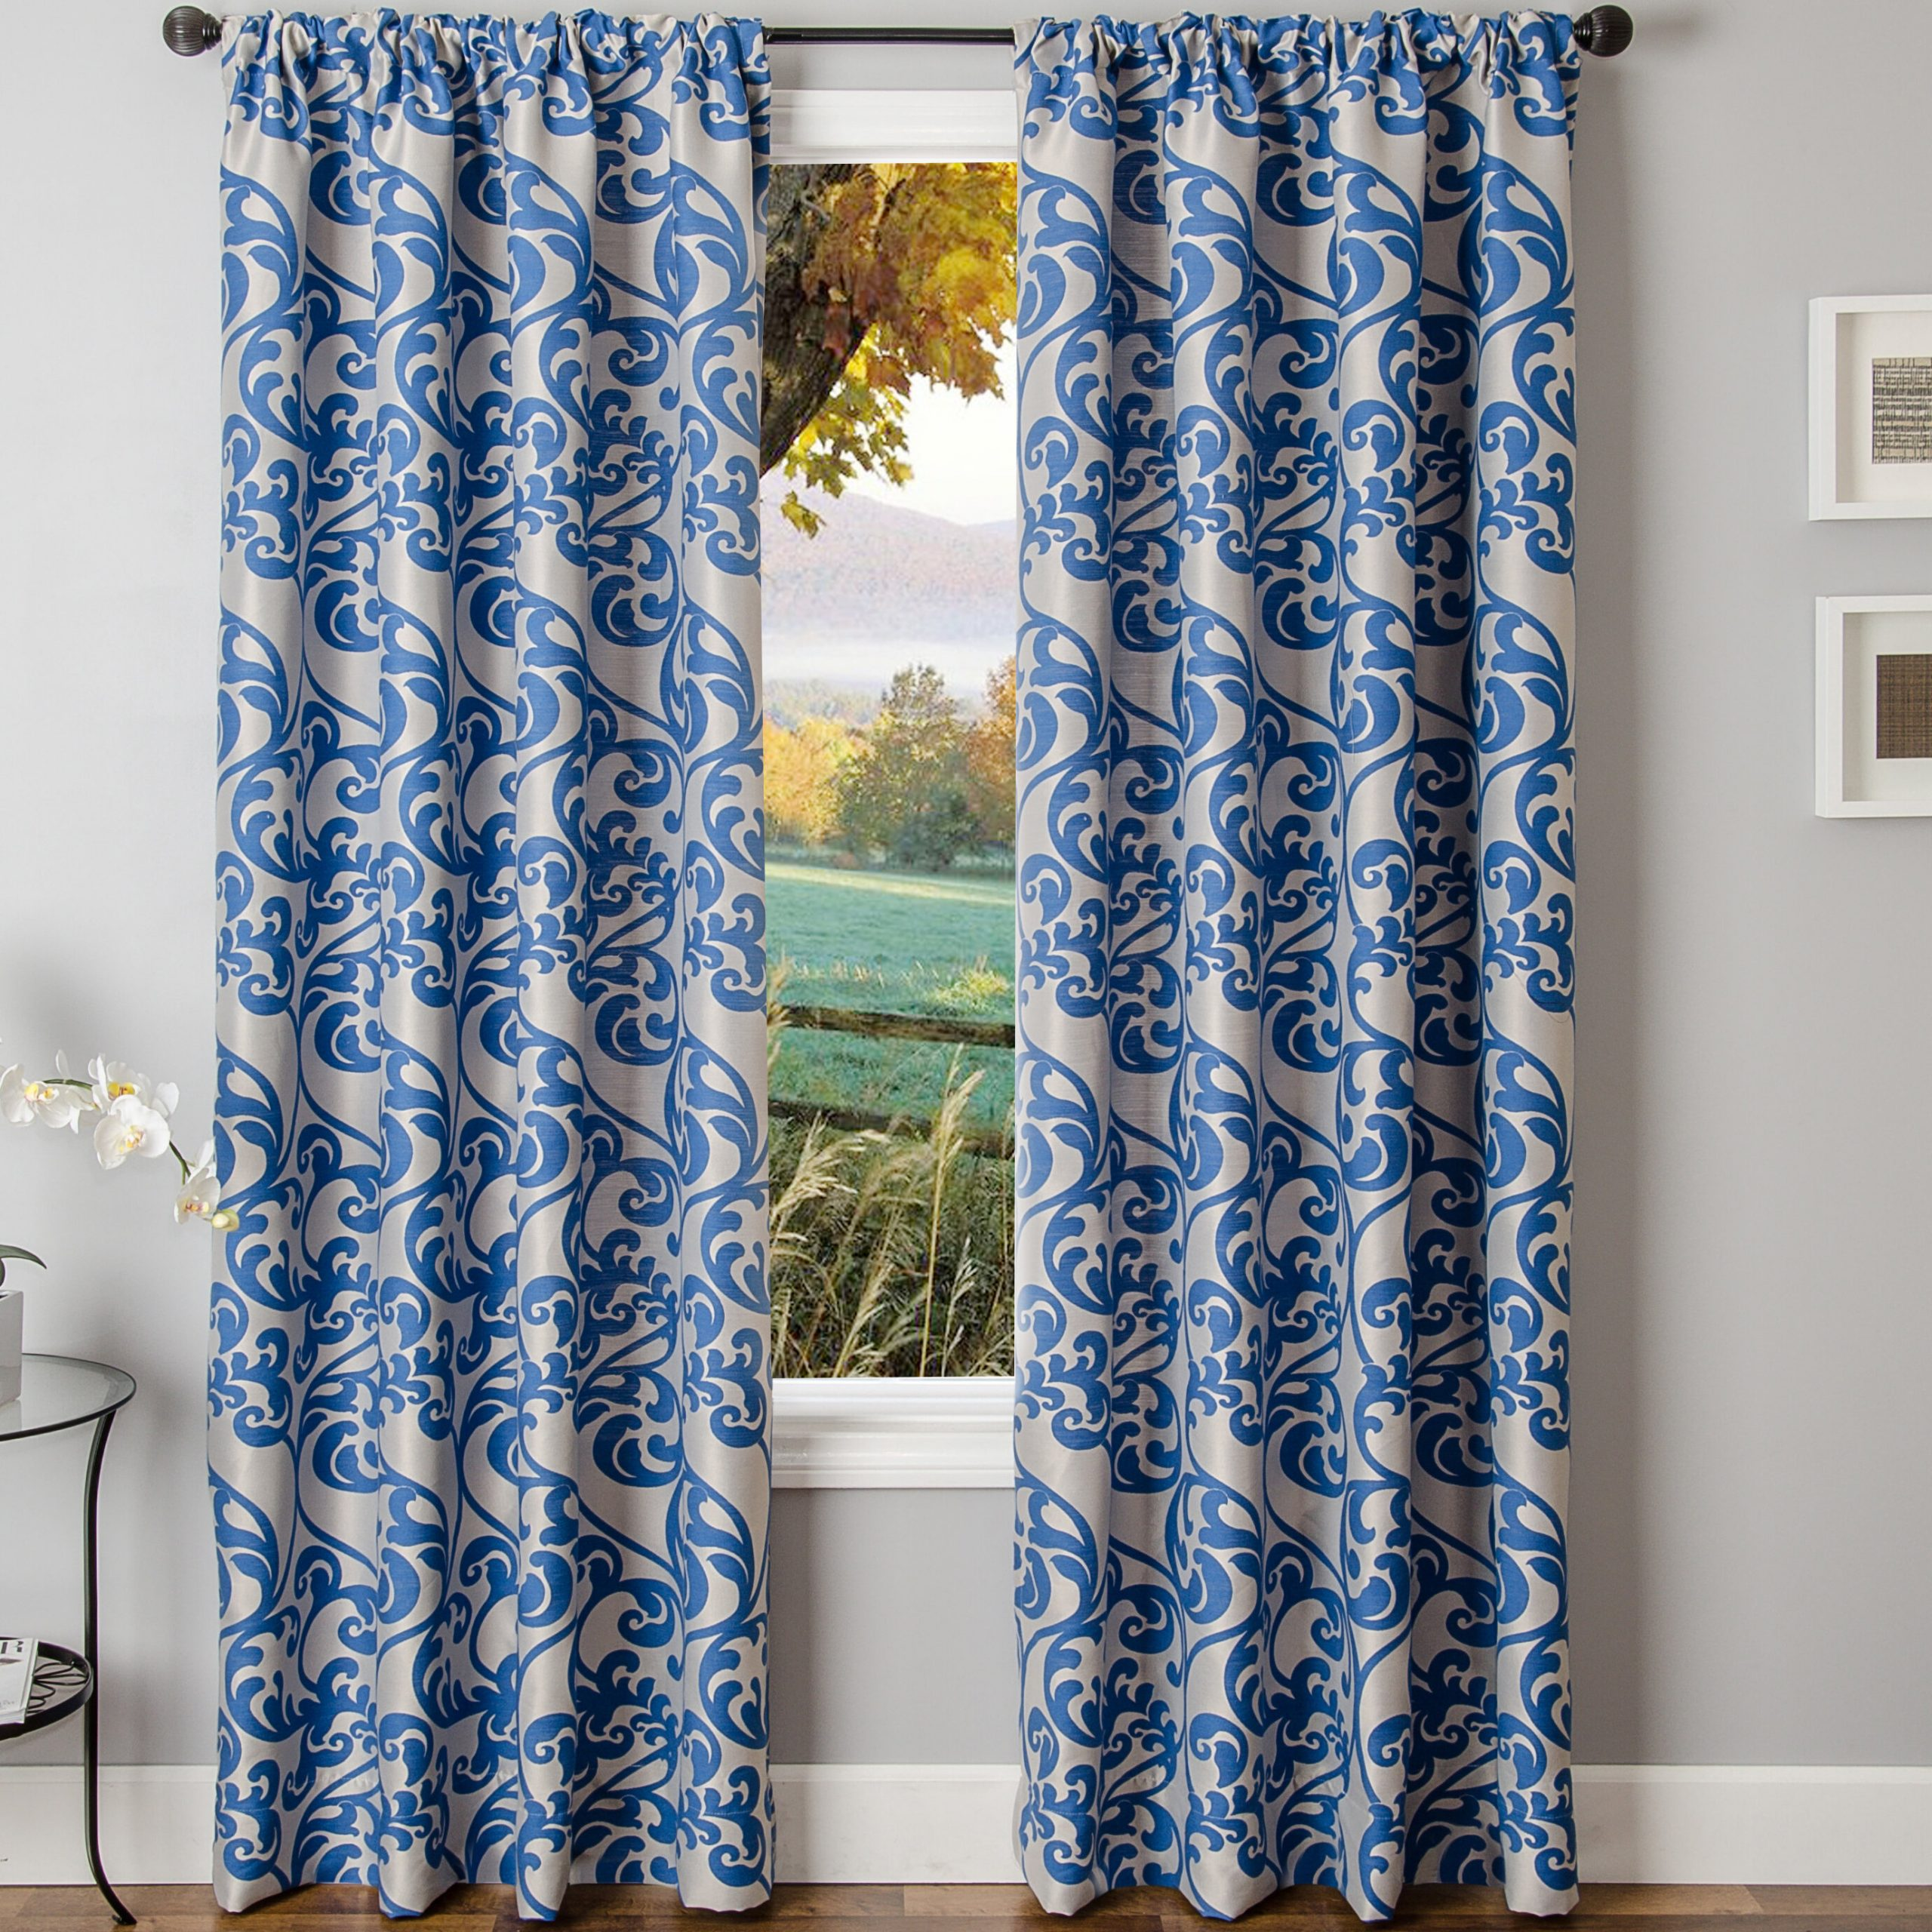 Winston Porter Lavonne Nature / Floral Room Darkening Rod Throughout Class Blue Cotton Blend Macrame Trimmed Decorative Window Curtains (View 12 of 20)